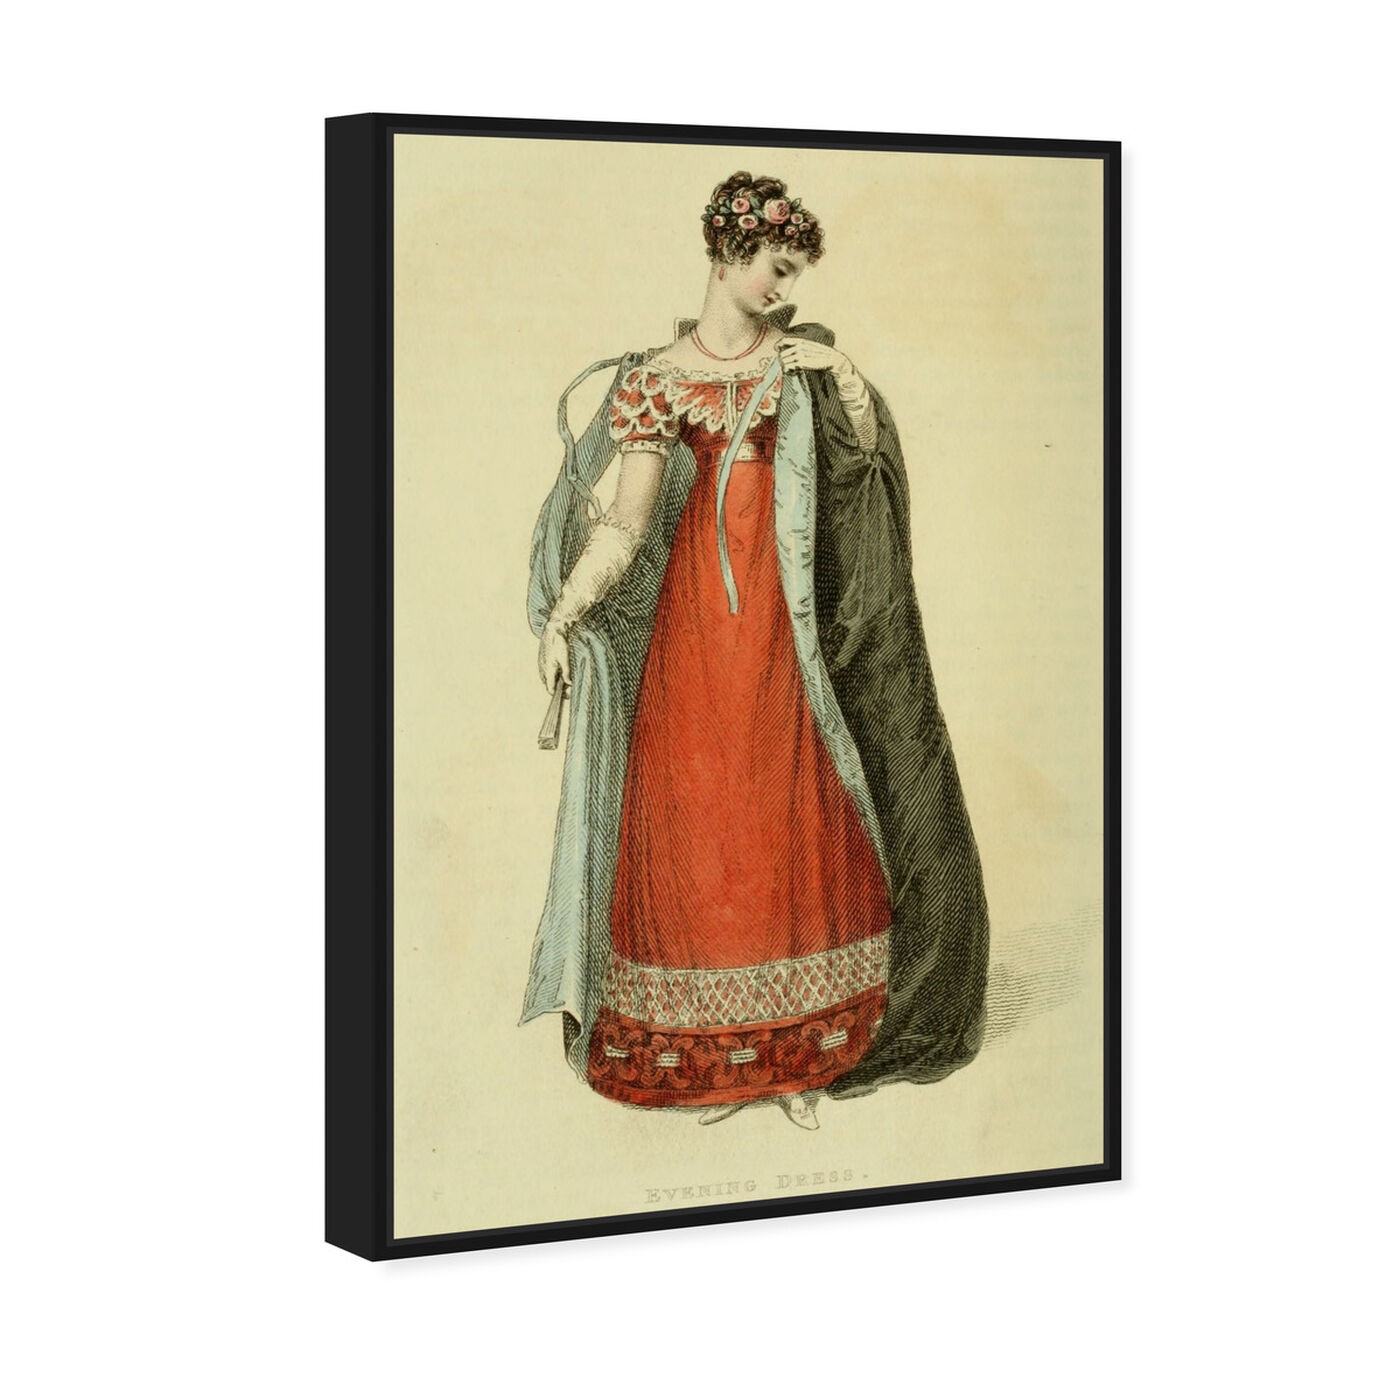 Angled view of Evening Dress - The Art Cabinet featuring classic and figurative and realism art.